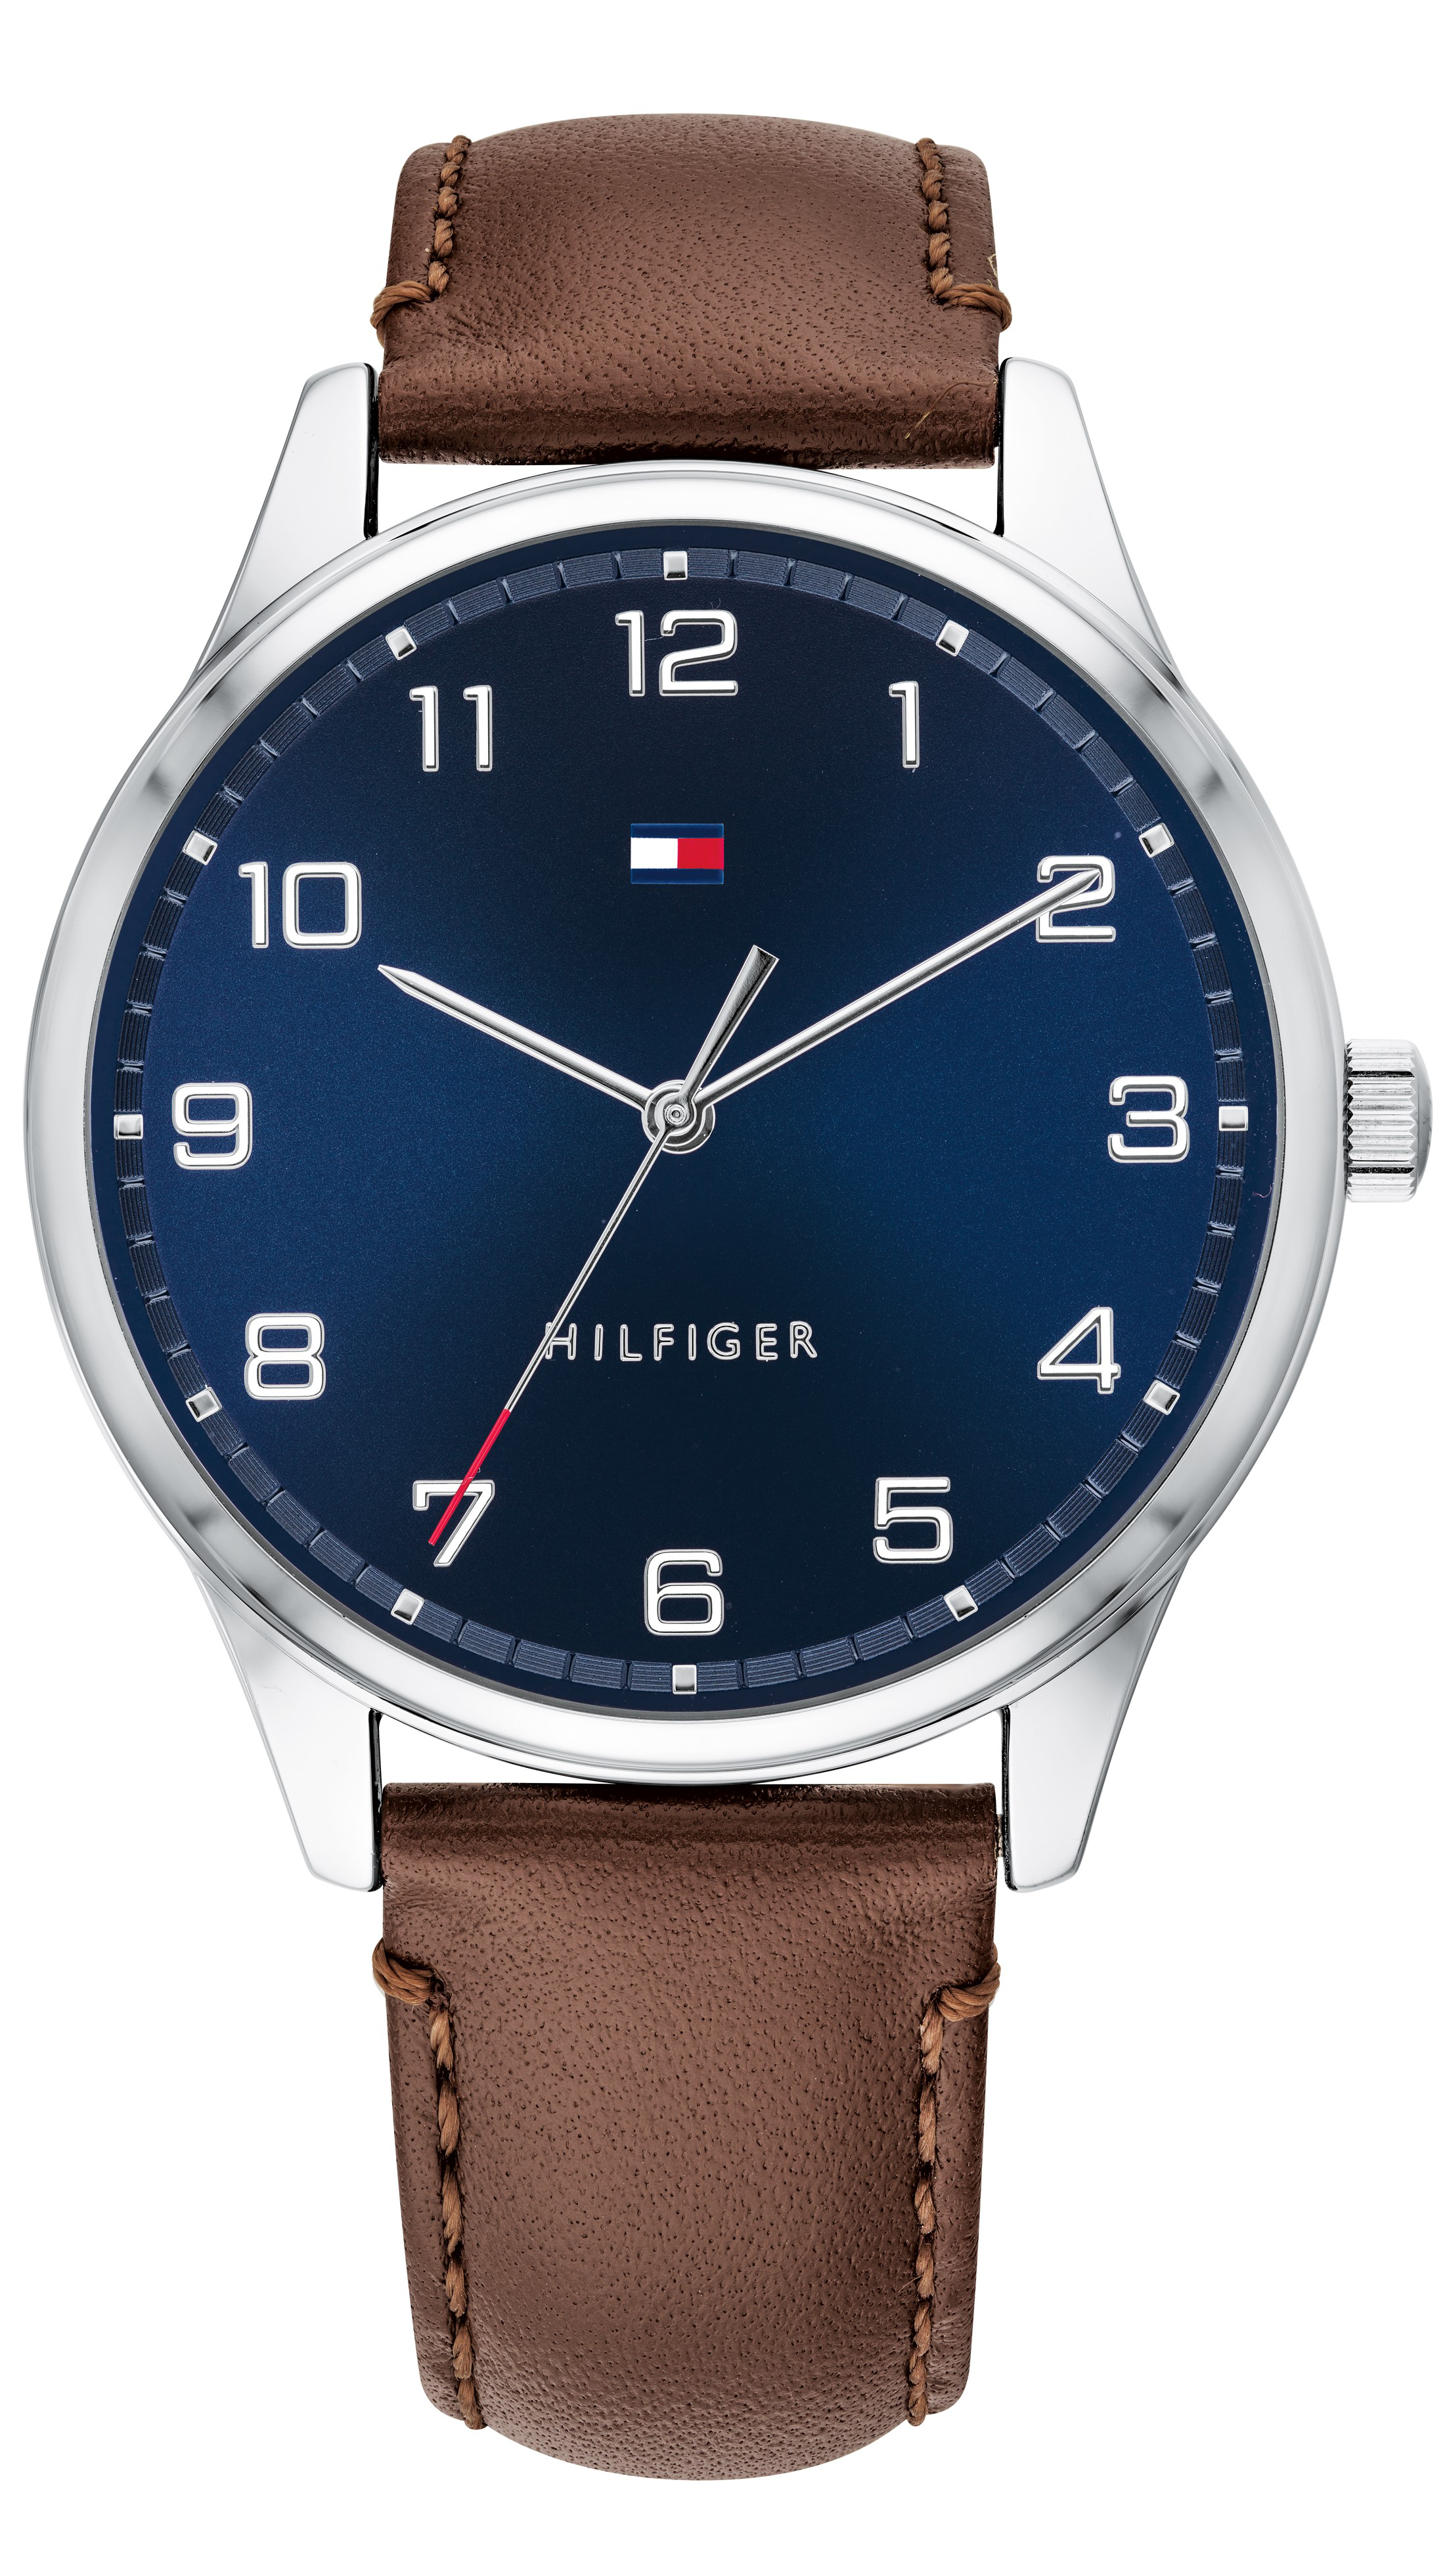 Th Essentials Tommy Hilfiger Watch 1791659 Brown Leather Strap Watch Tommy Hilfiger Watches Brown Leather Strap